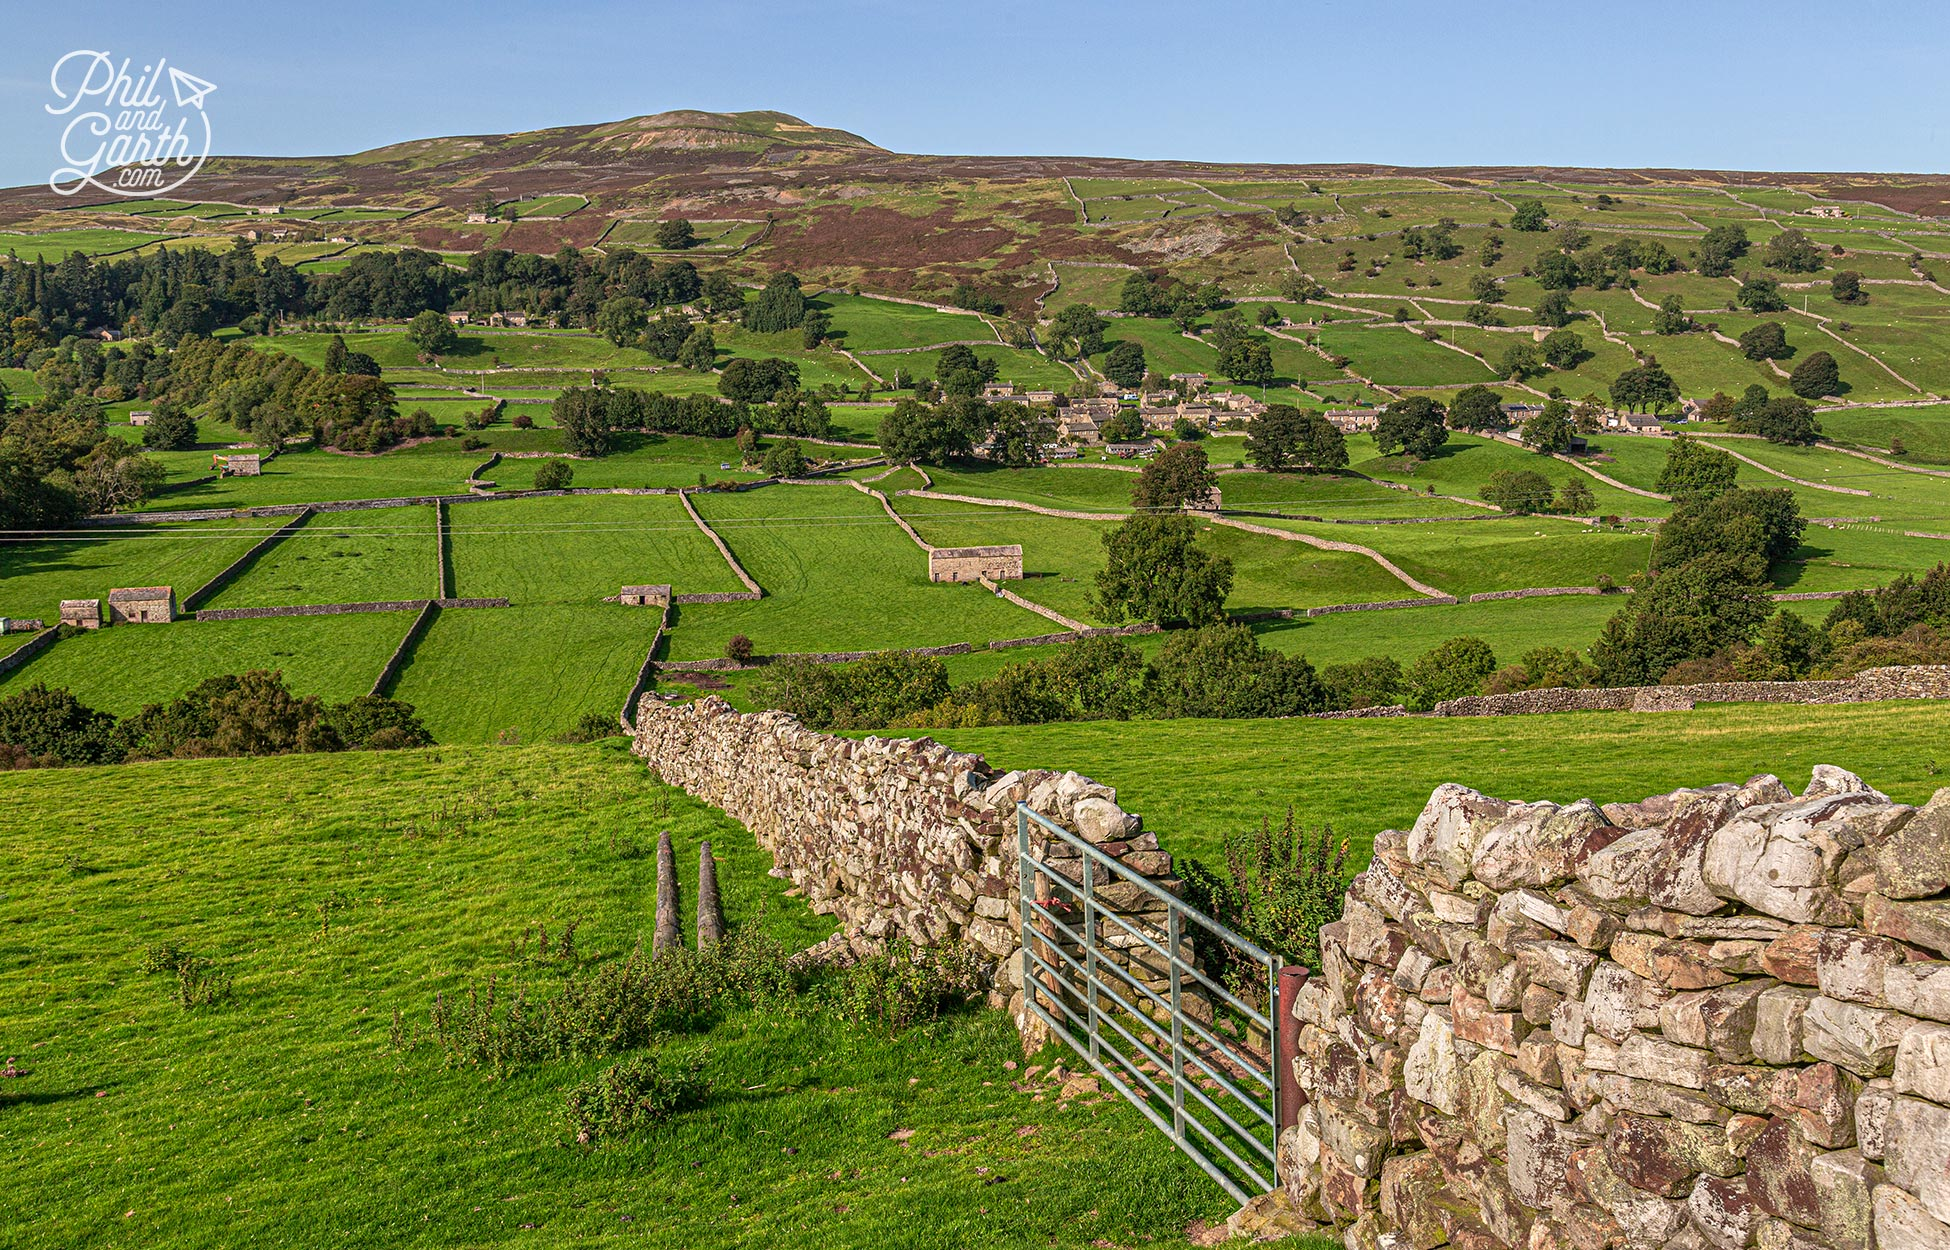 Lots of stone barns dot the drystone walled landscape in Swaledale